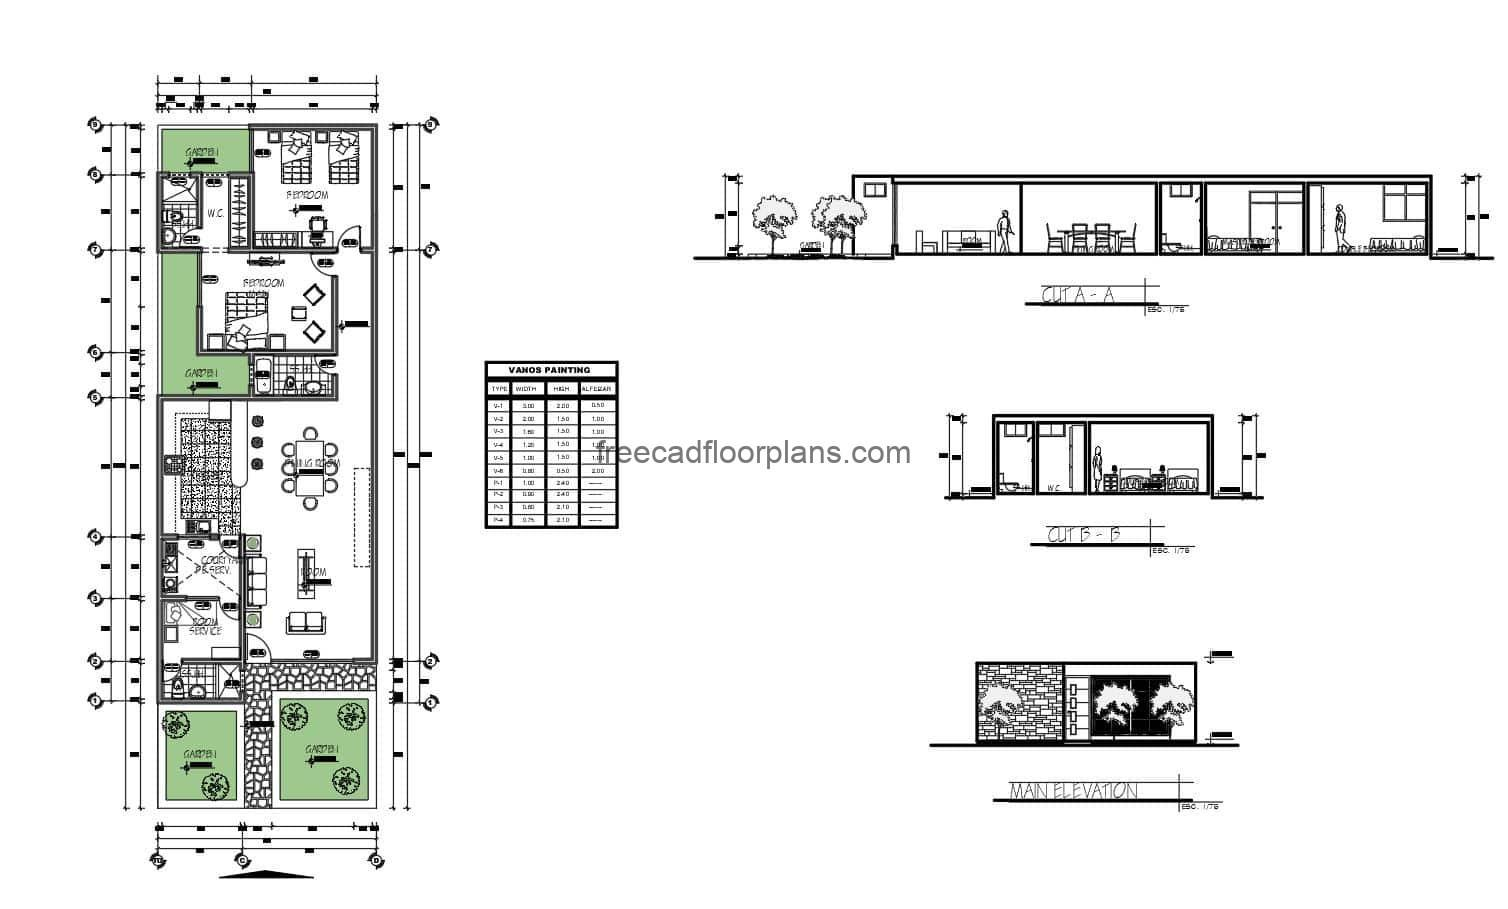 Architectural plans of a simple one level residence with two bedrooms and maid's room with service area, living room, kitchen, dining room, and two bathrooms with front gardens. CAD DWG plans for free download.